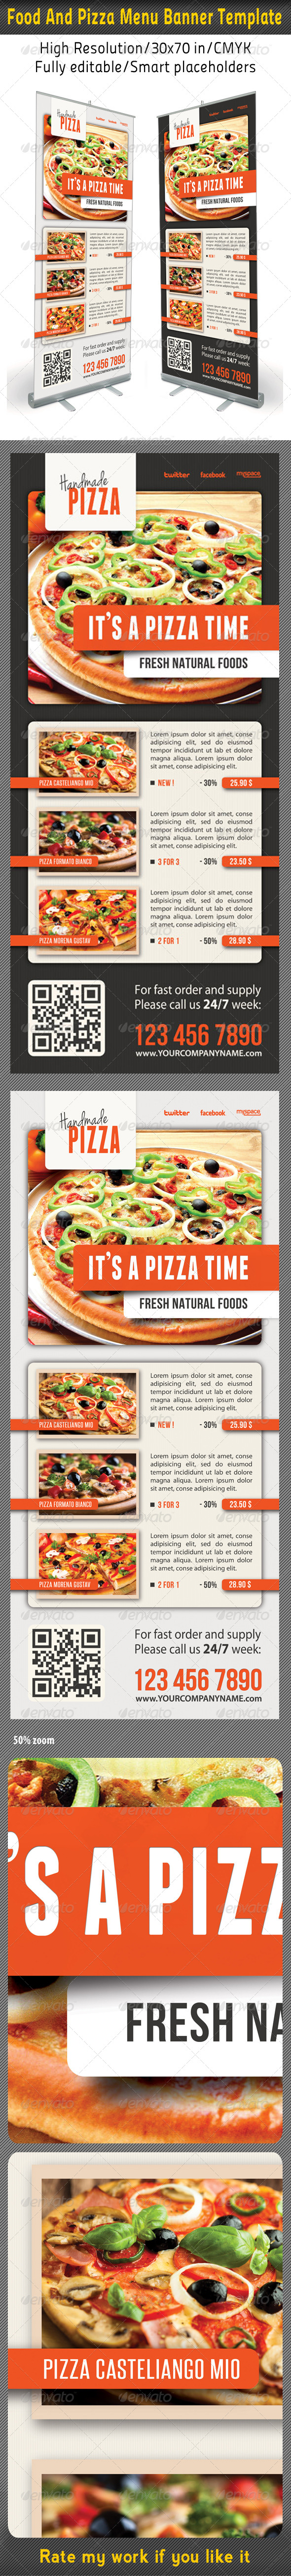 Food And Pizza Menu Banner Template 08